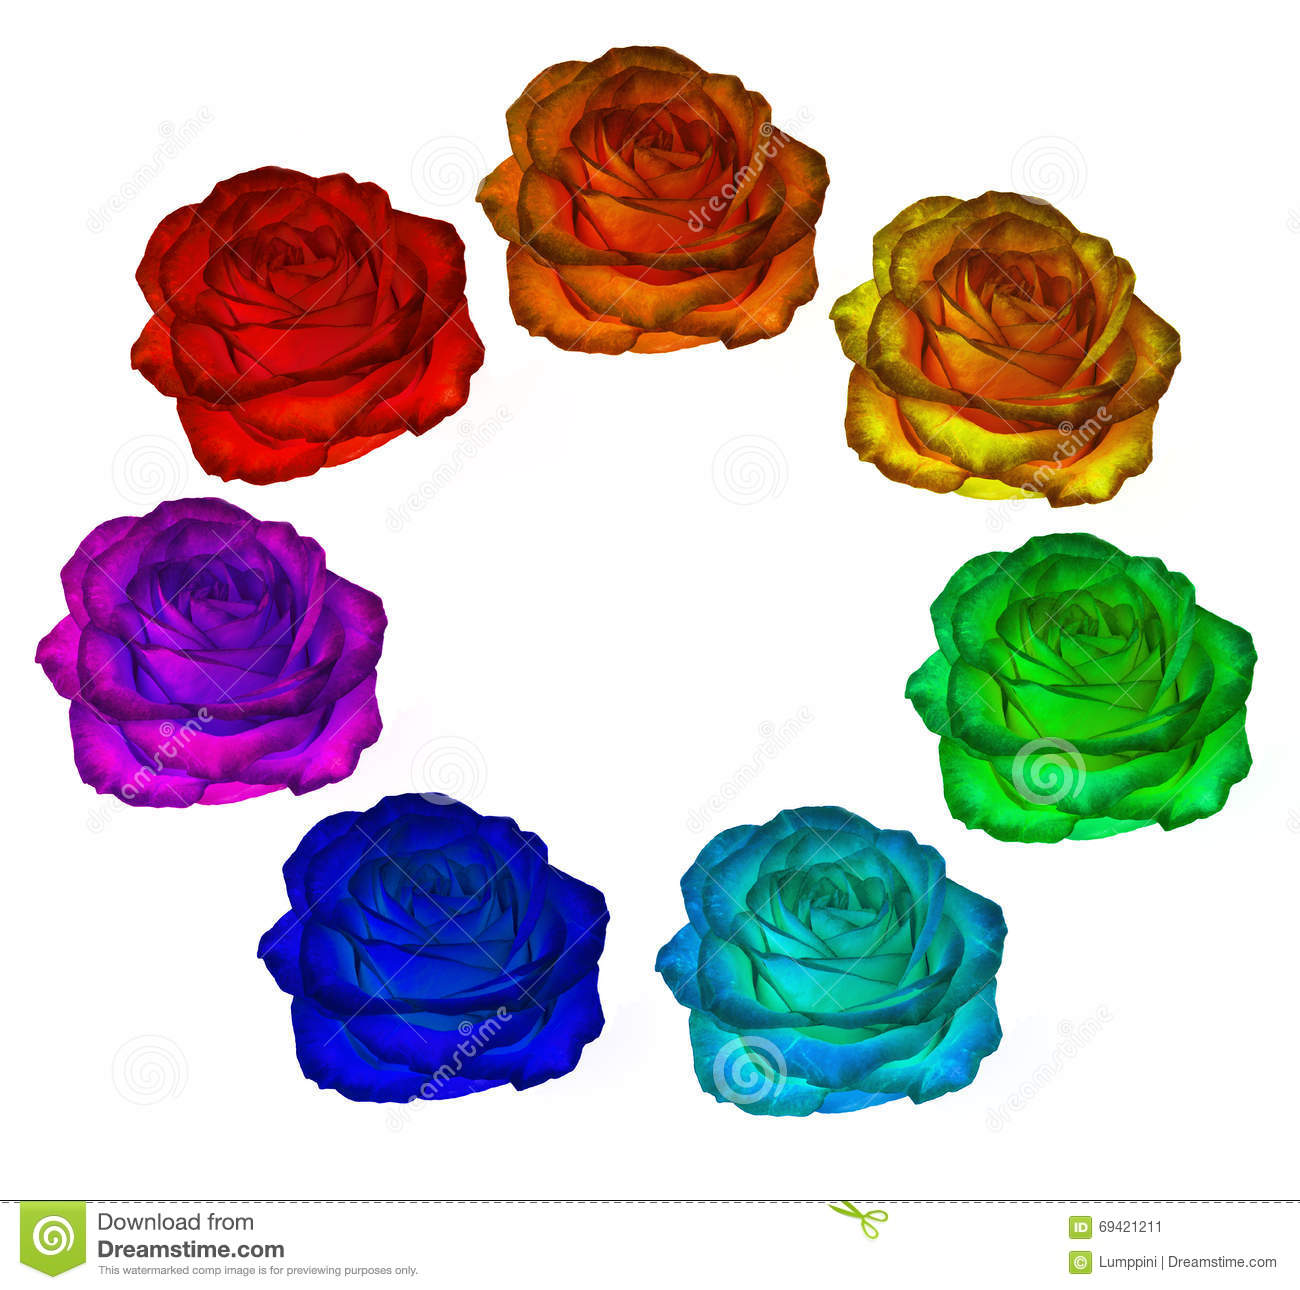 Roses of all colors of the rainbow on a white background. clipart.